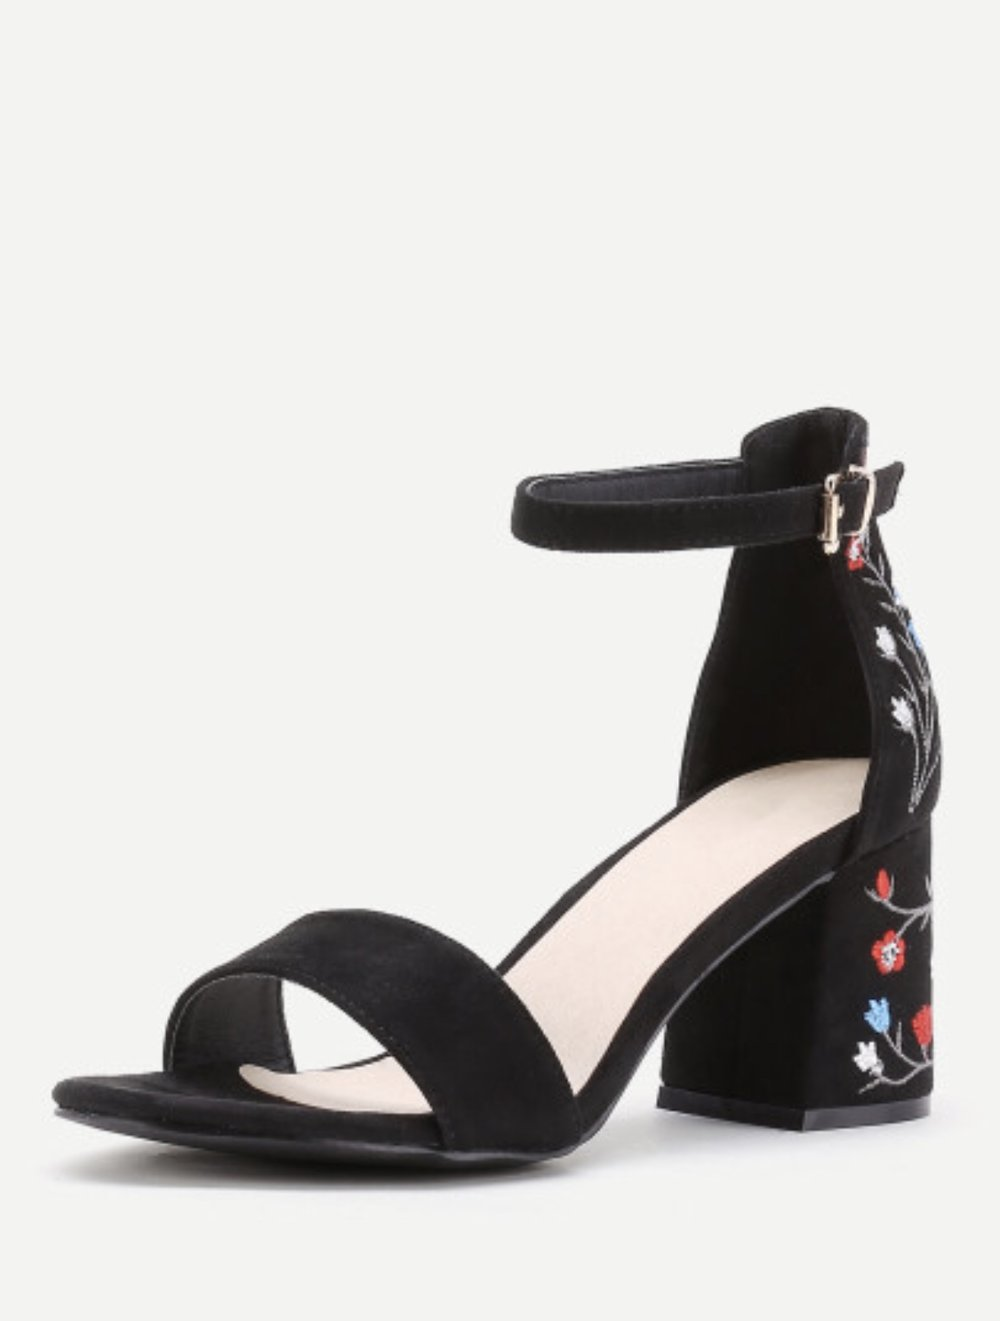 Embroidery Strap Heel's    Flower Embroidery Ankle Strap Heels